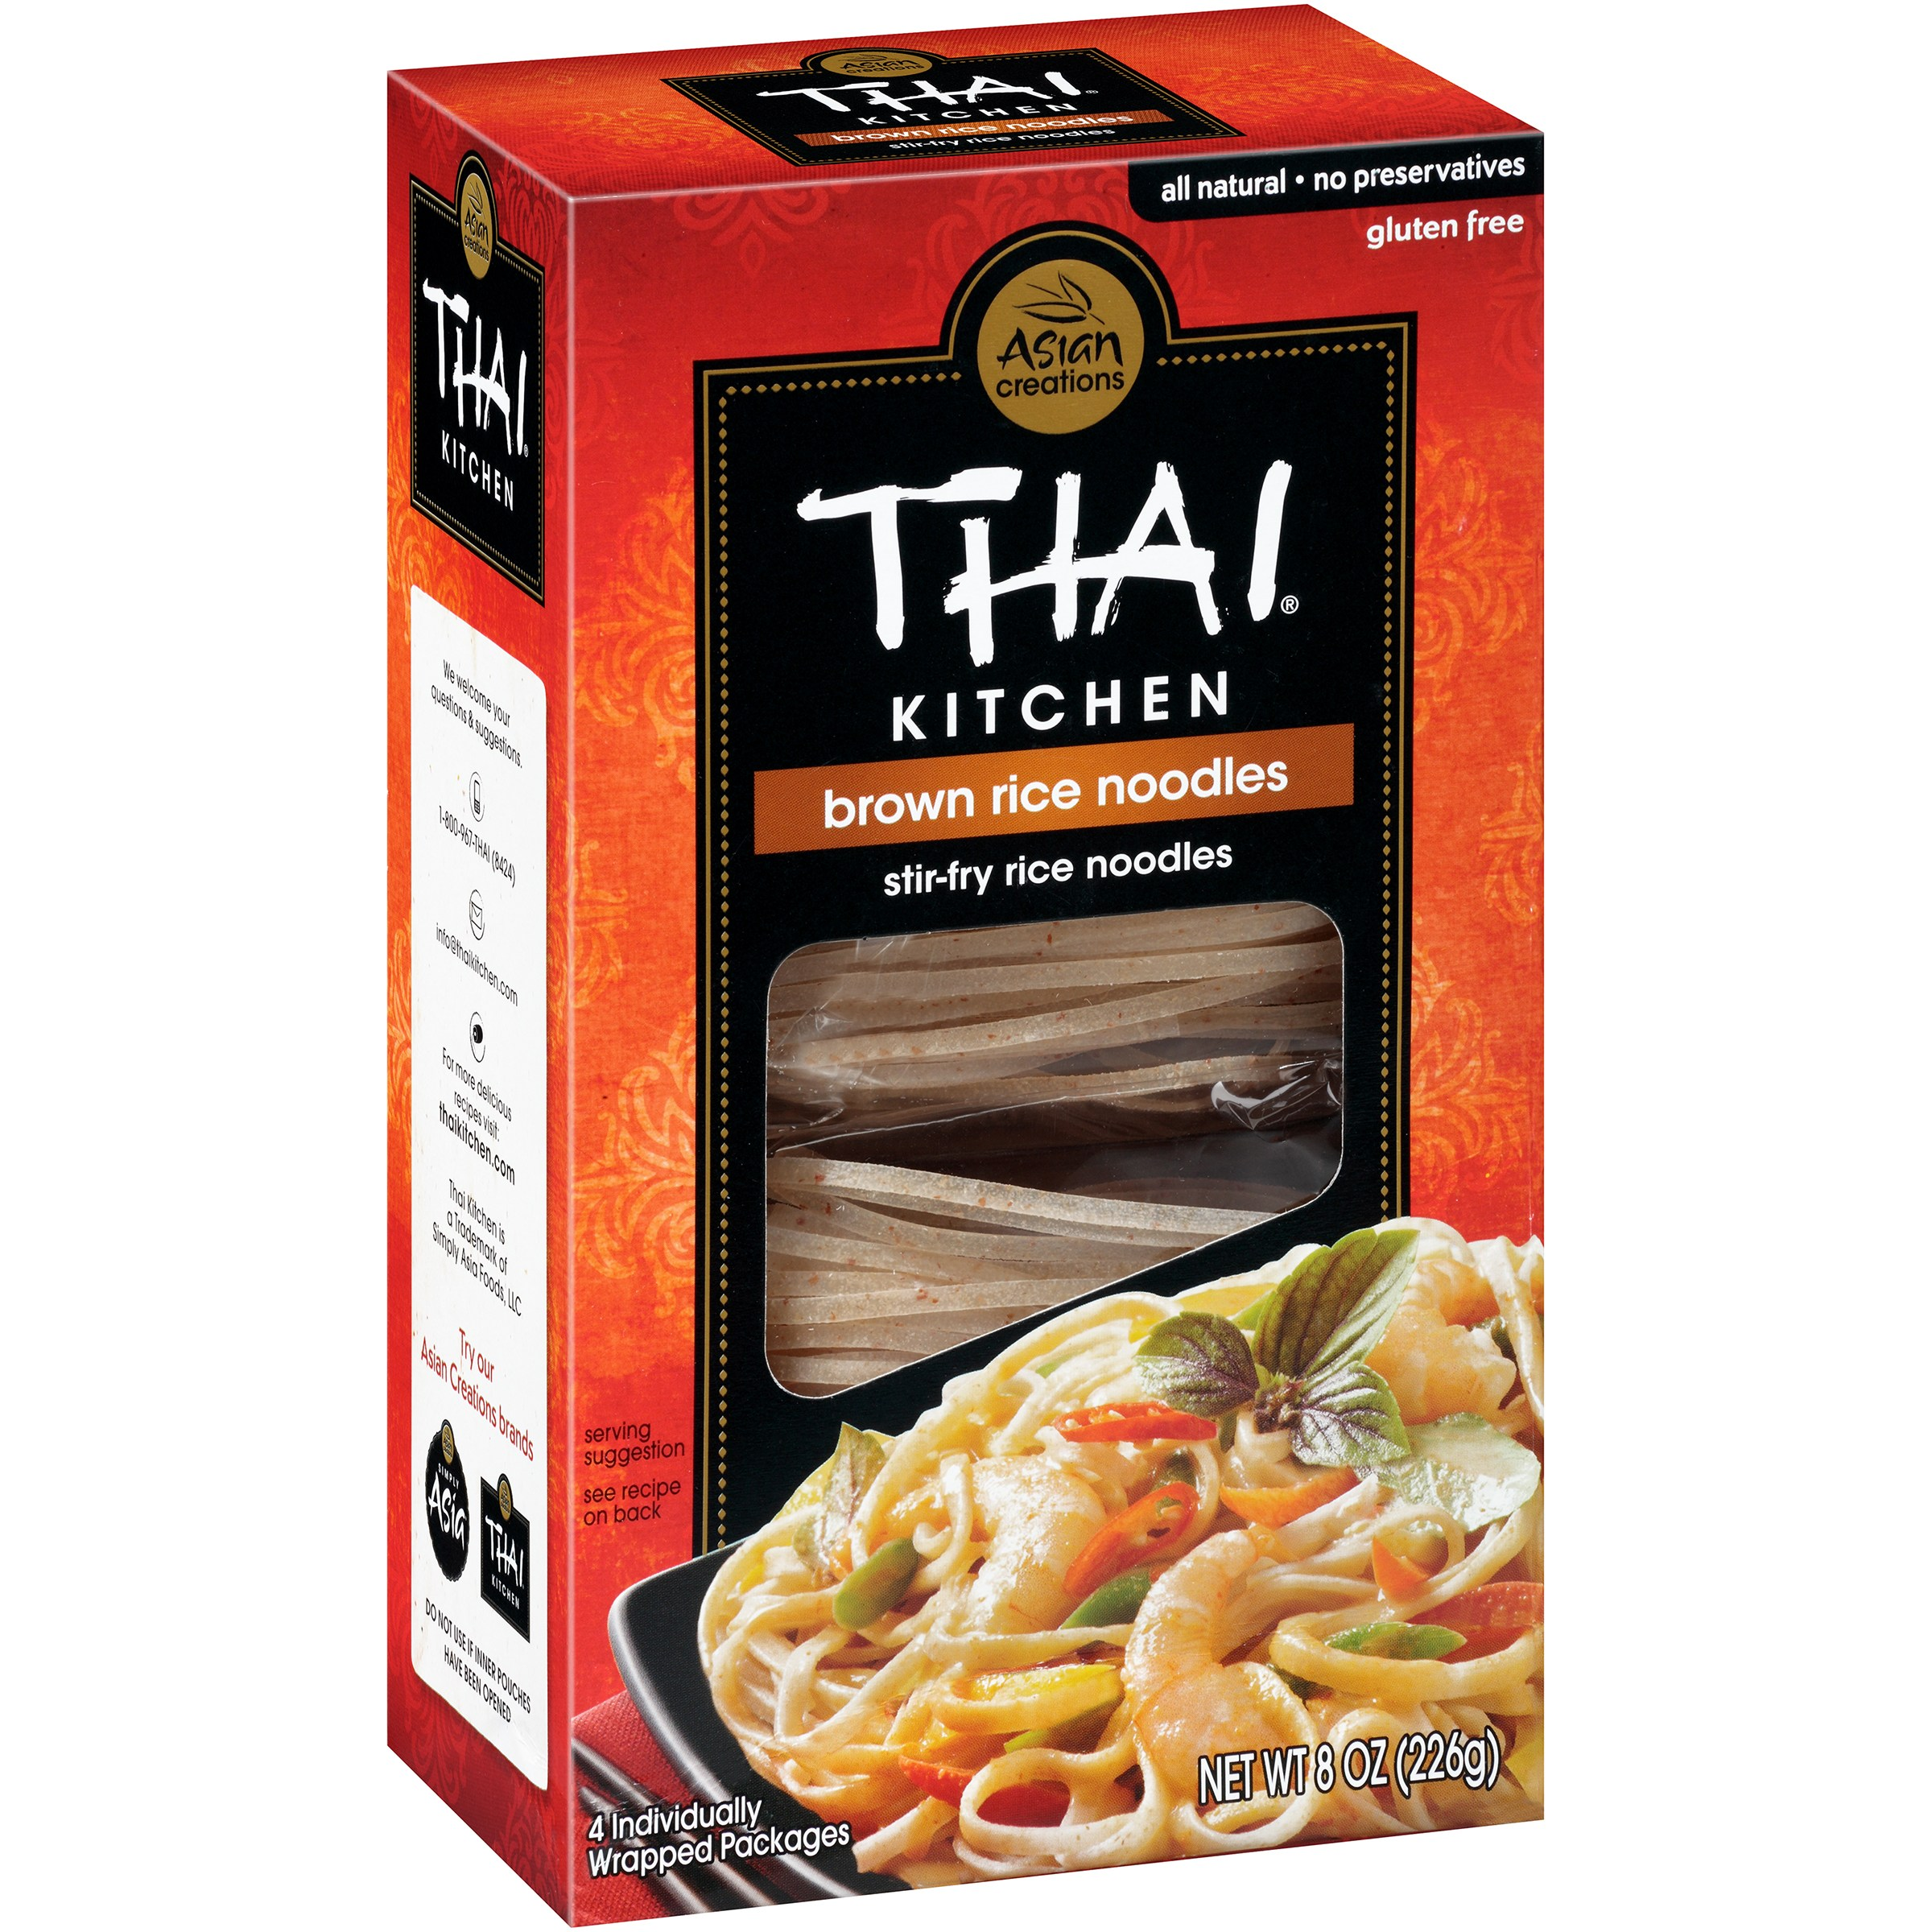 Thai Kitchen thai kitchen asian creations brown rice stir-fry noodles, 8 oz